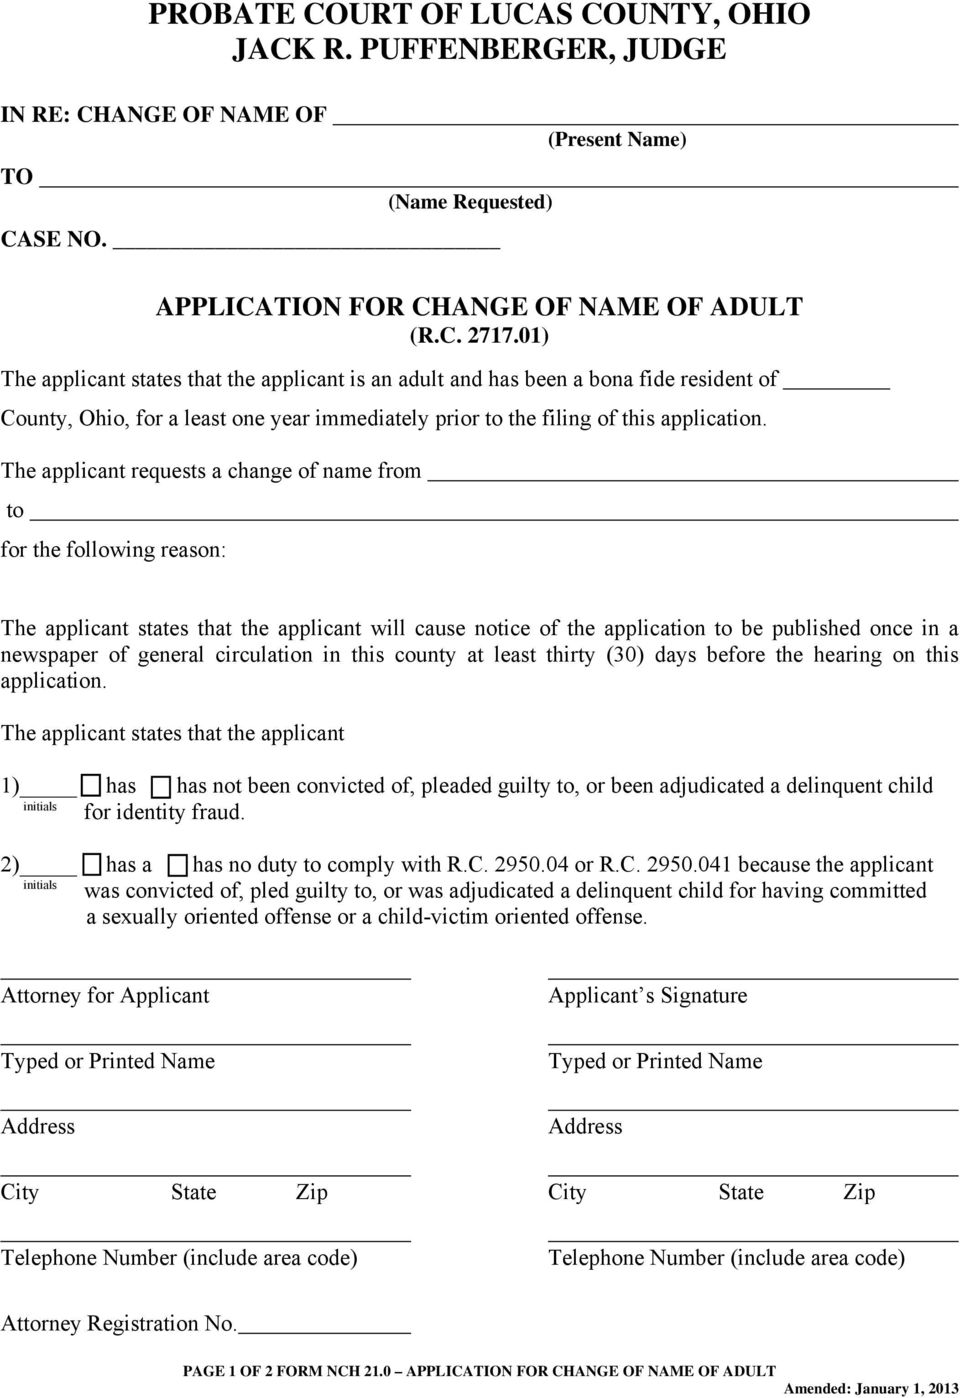 The applicant requests a change of name from to for the following reason: The applicant states that the applicant will cause notice of the application to be published once in a newspaper of general